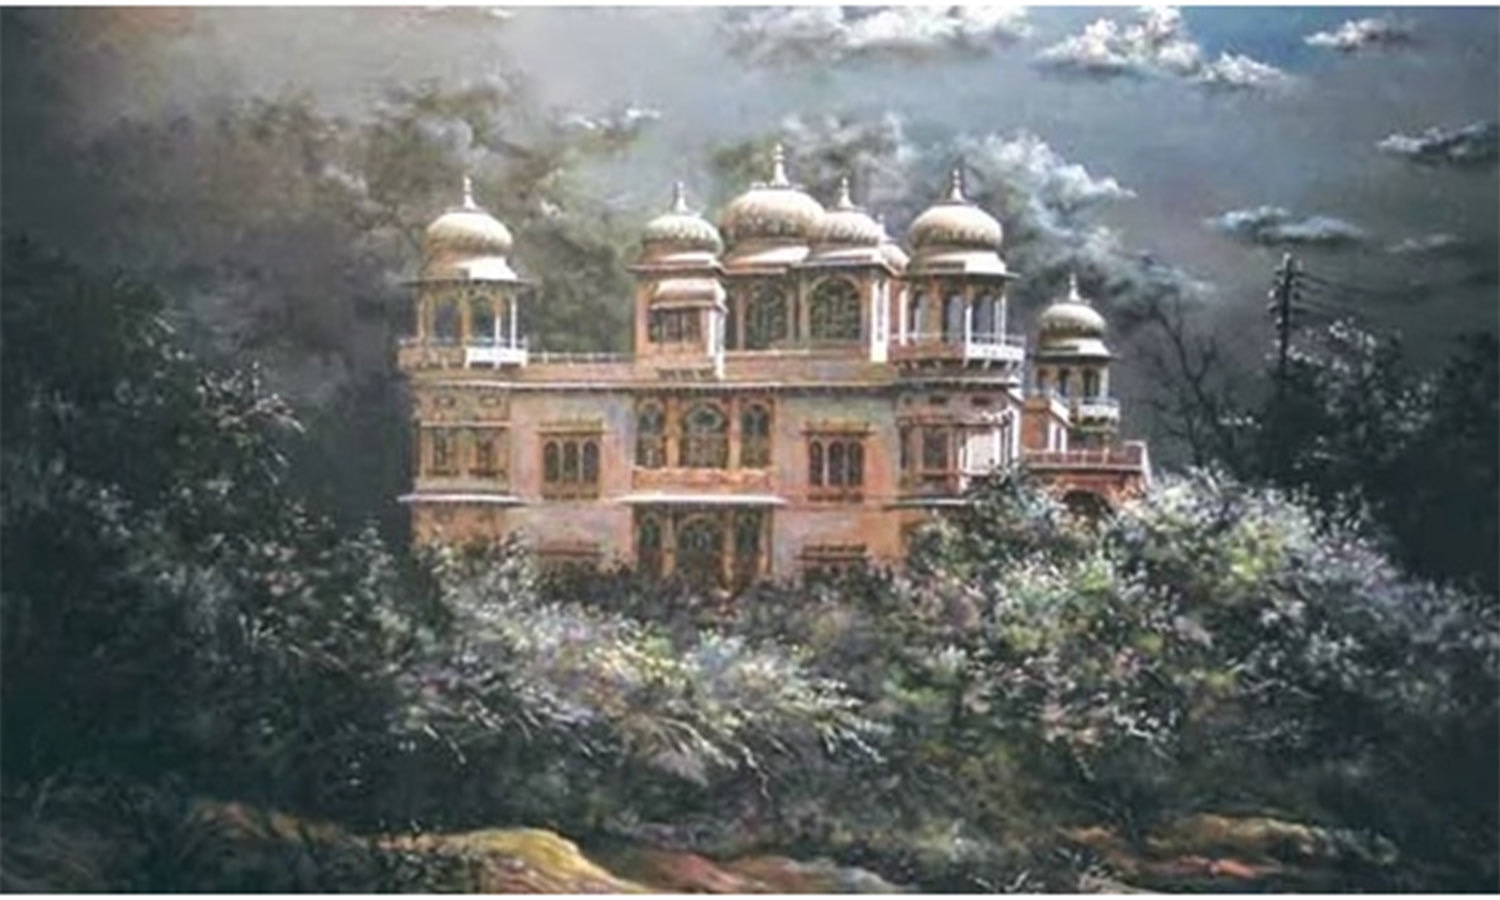 An old painting of The Mohatta Palace surrounded by shrubs and other coastal vegetation. The palatial house was built in 1927 by a businessman as a summer retreat close to the Clifton Beach. In 1964 it became the home of Mrs. Fatima Jinnah. She was the sister of Pakistan's founder, Muhammad Ali Jinnah.